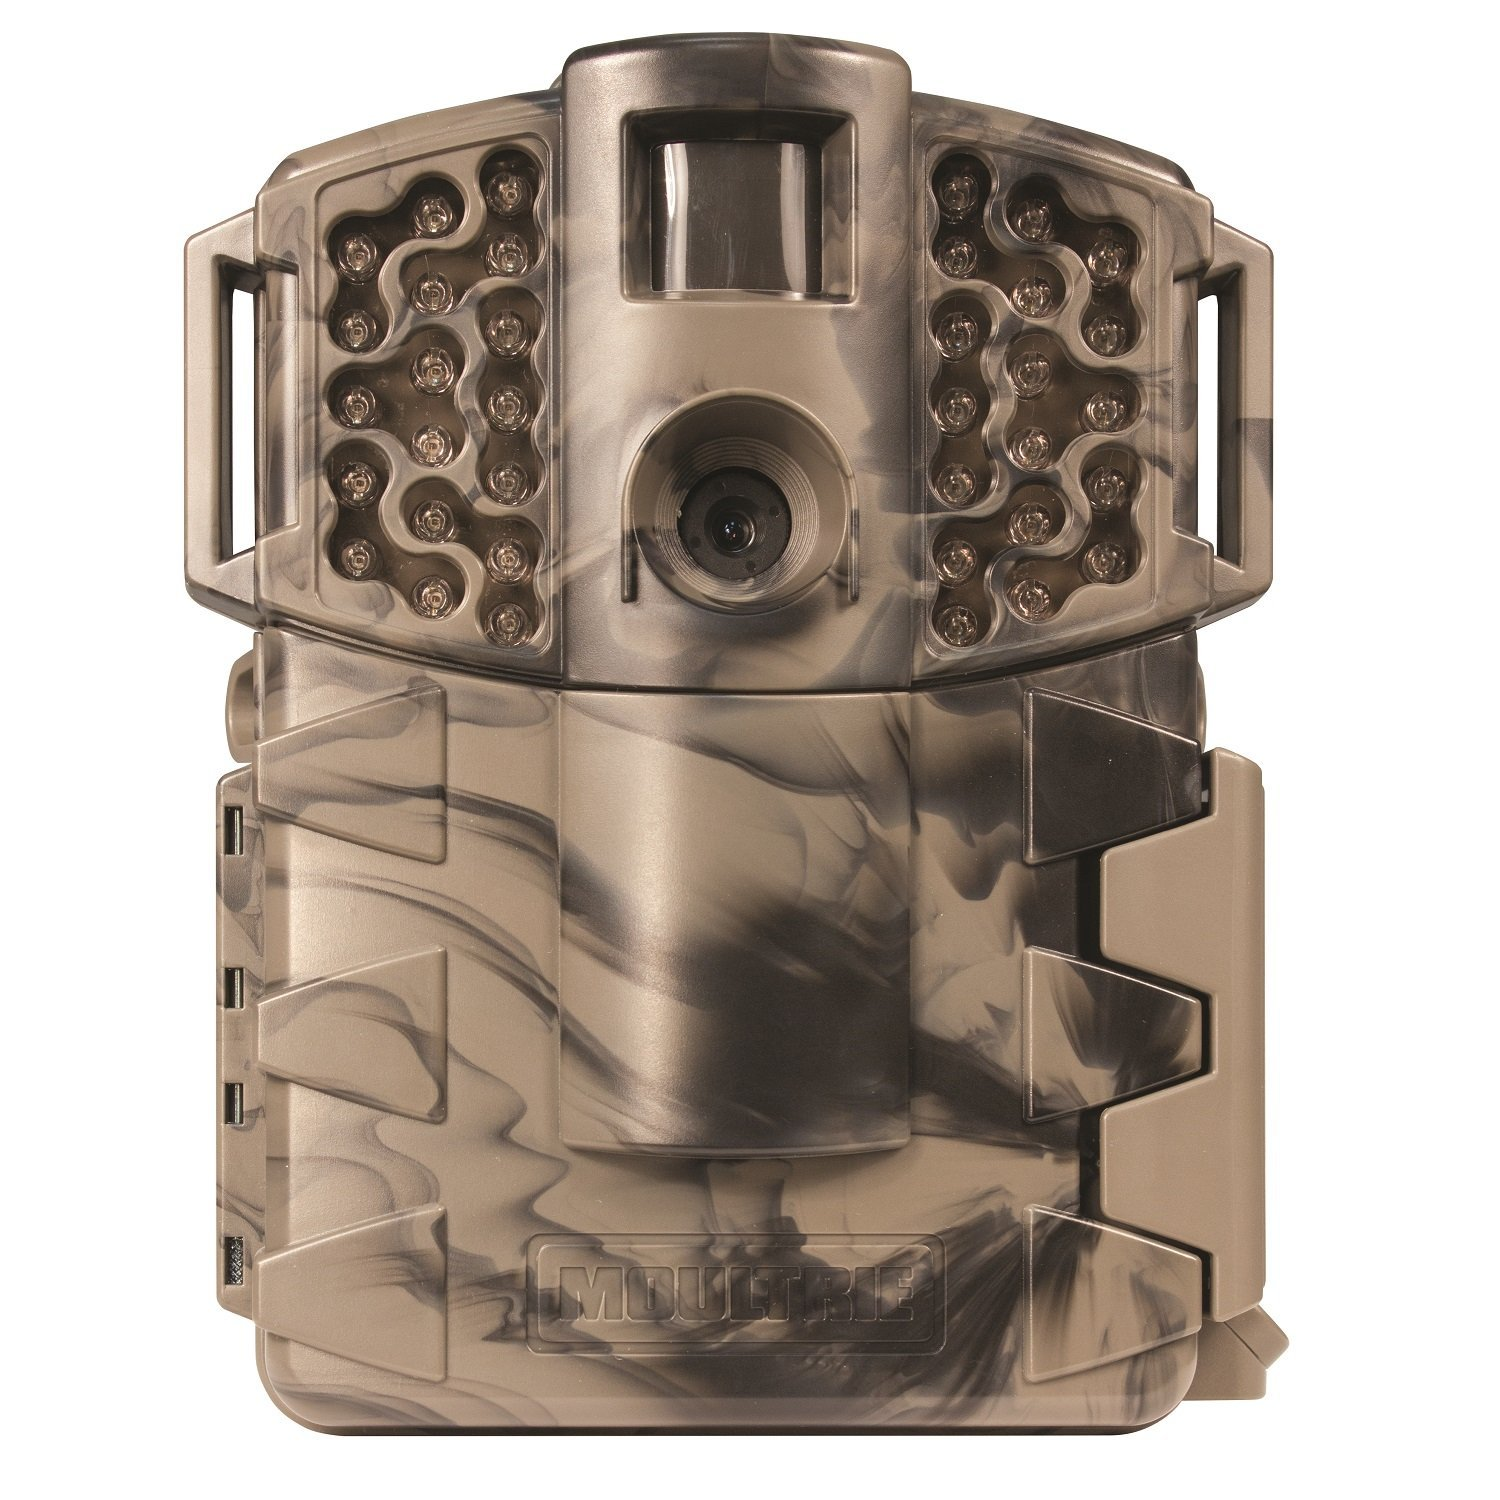 Moultrie A-7i Review - Trail Camera Lab